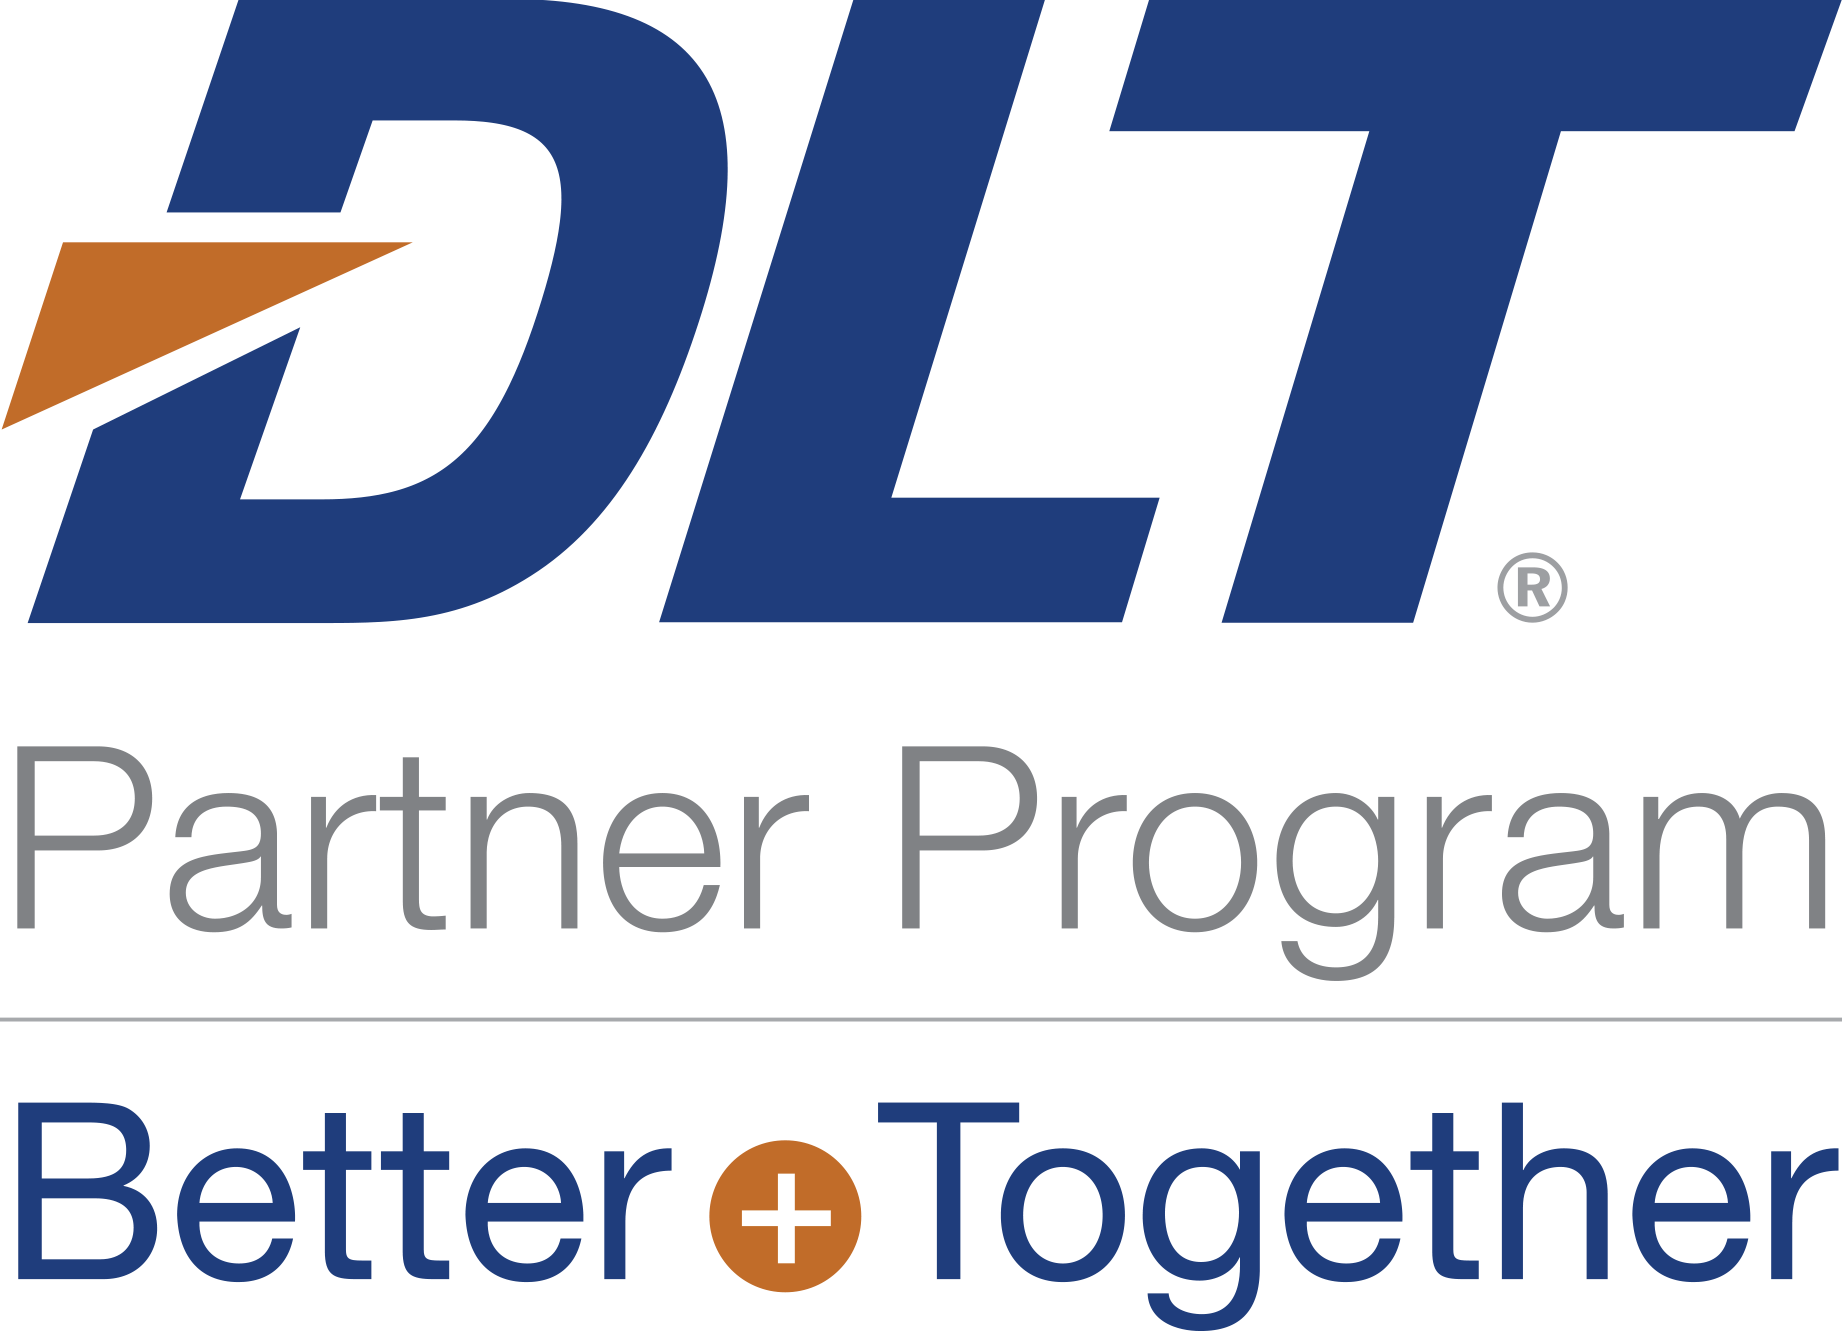 Autodesk DLT Partner Program Better + Together